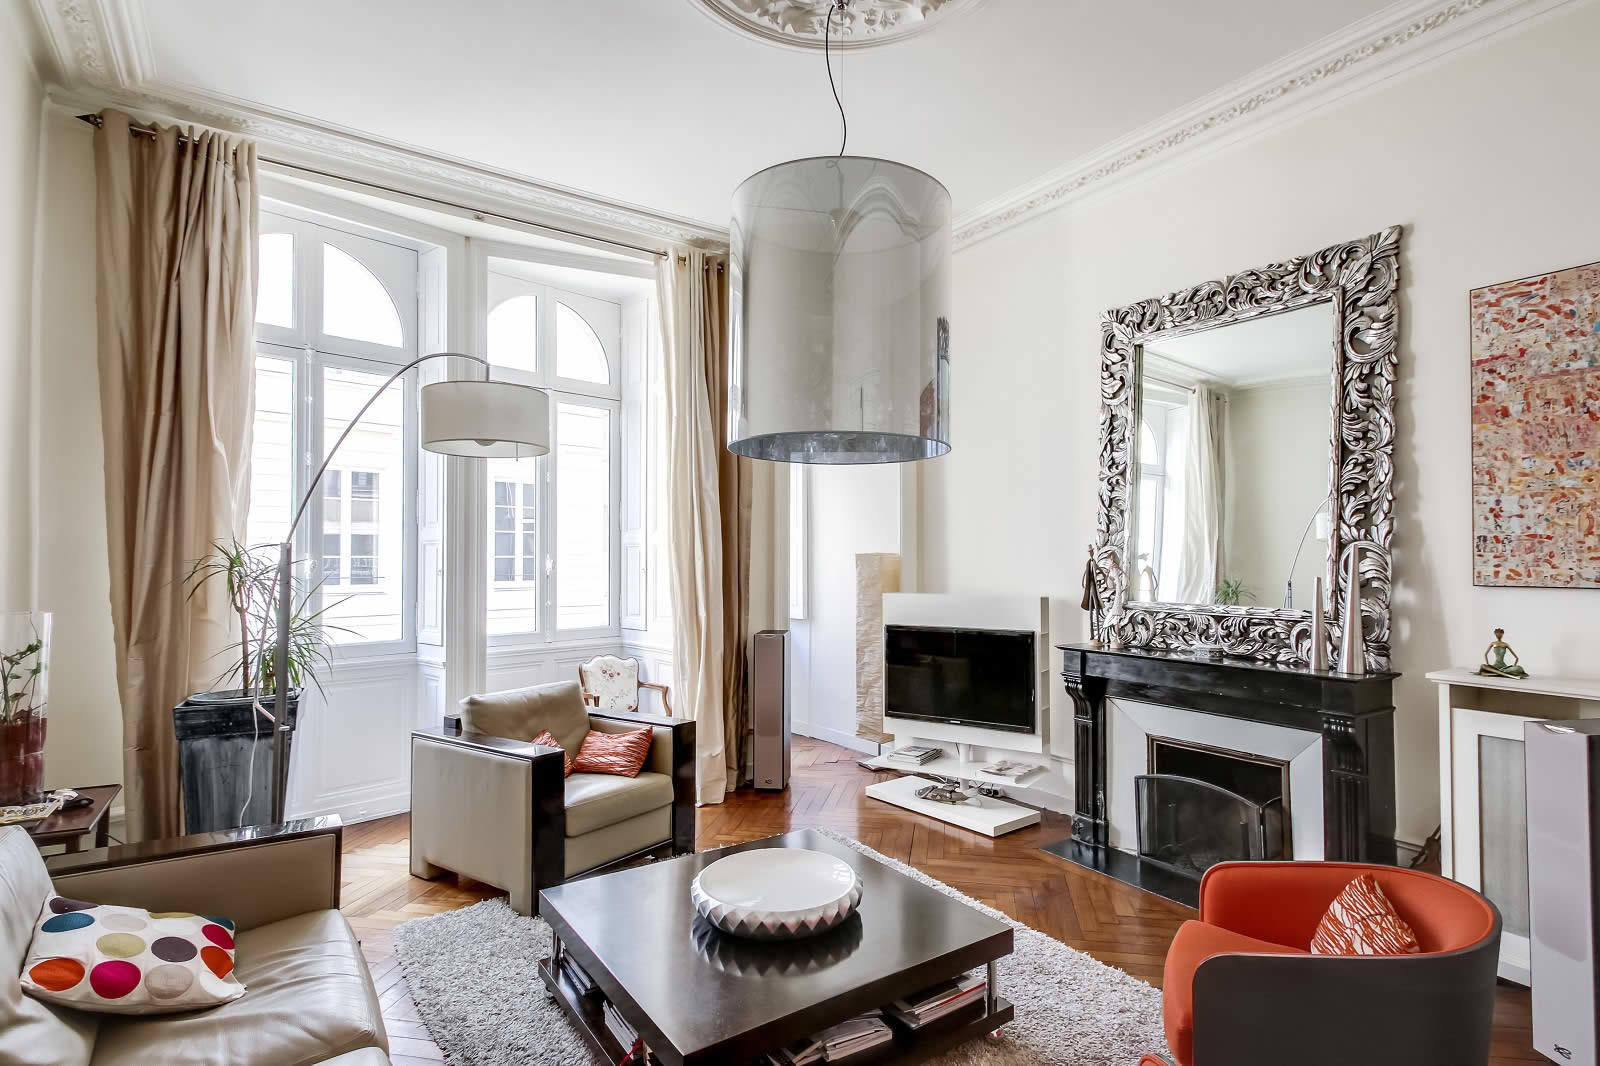 mansion-for-sale-5-bedrooms-parquet-fireplaces